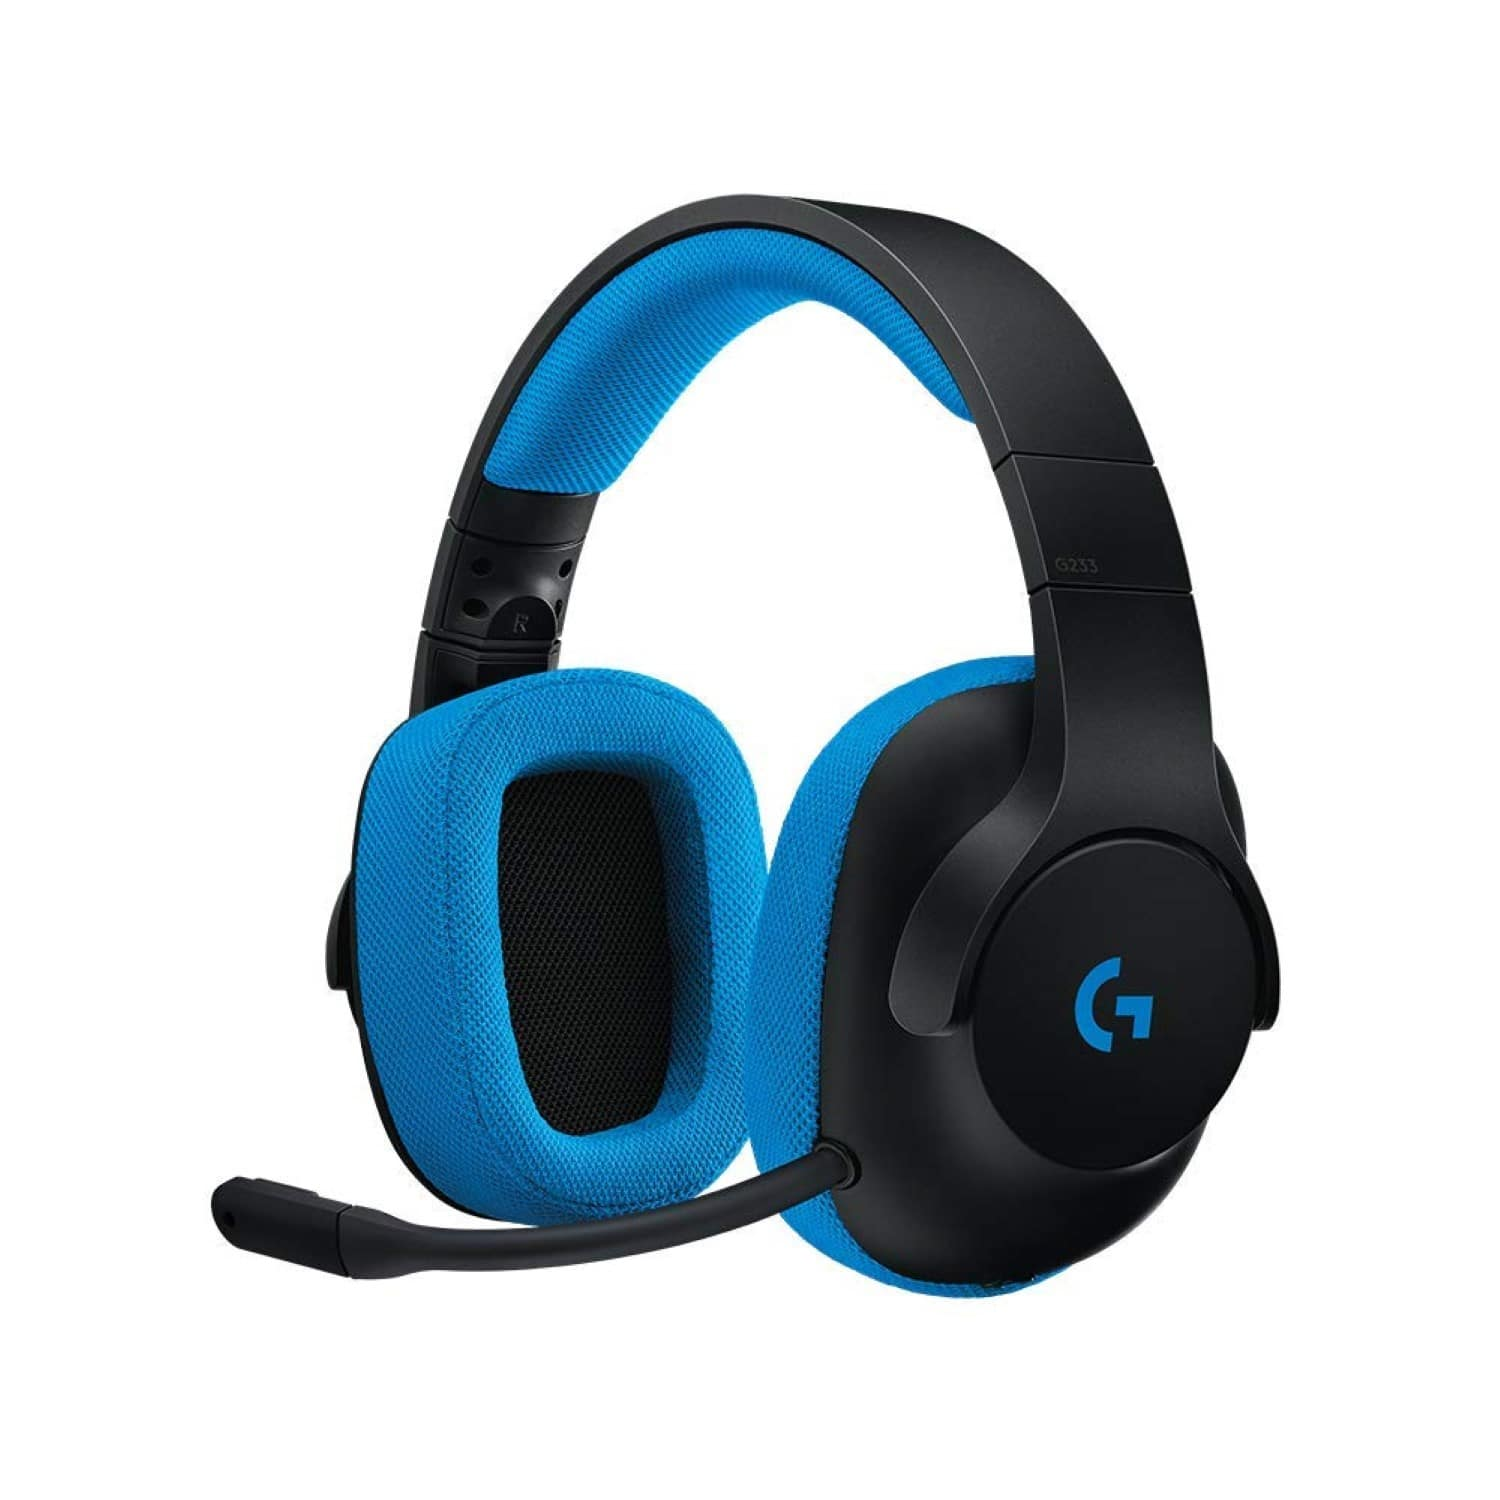 Logitech G233 Prodigy Wired Gaming Headset for $27.99 + Free S&H Orders $35+